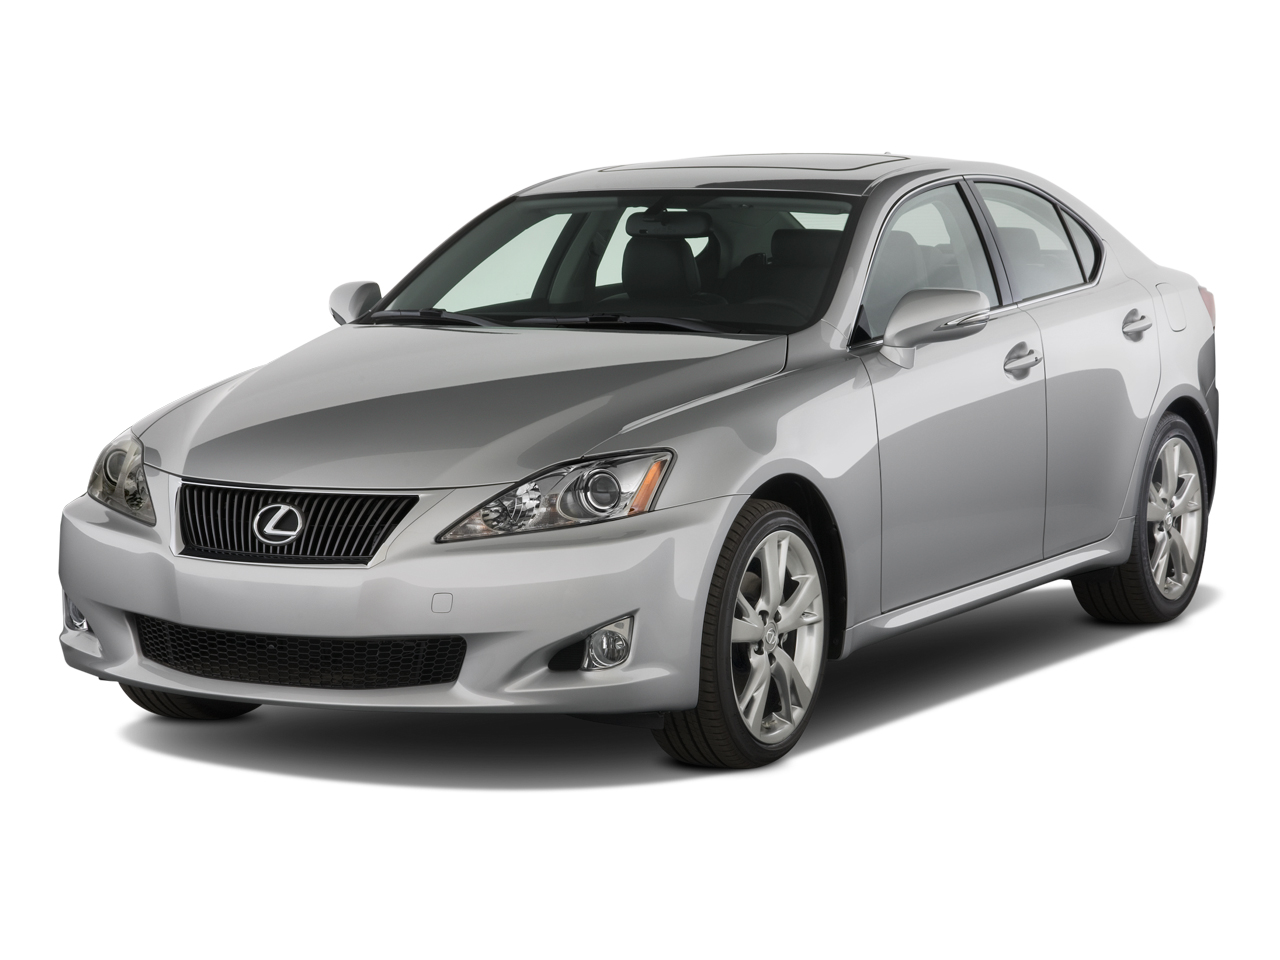 2010 lexus is 250 review ratings specs prices and photos the car connection. Black Bedroom Furniture Sets. Home Design Ideas